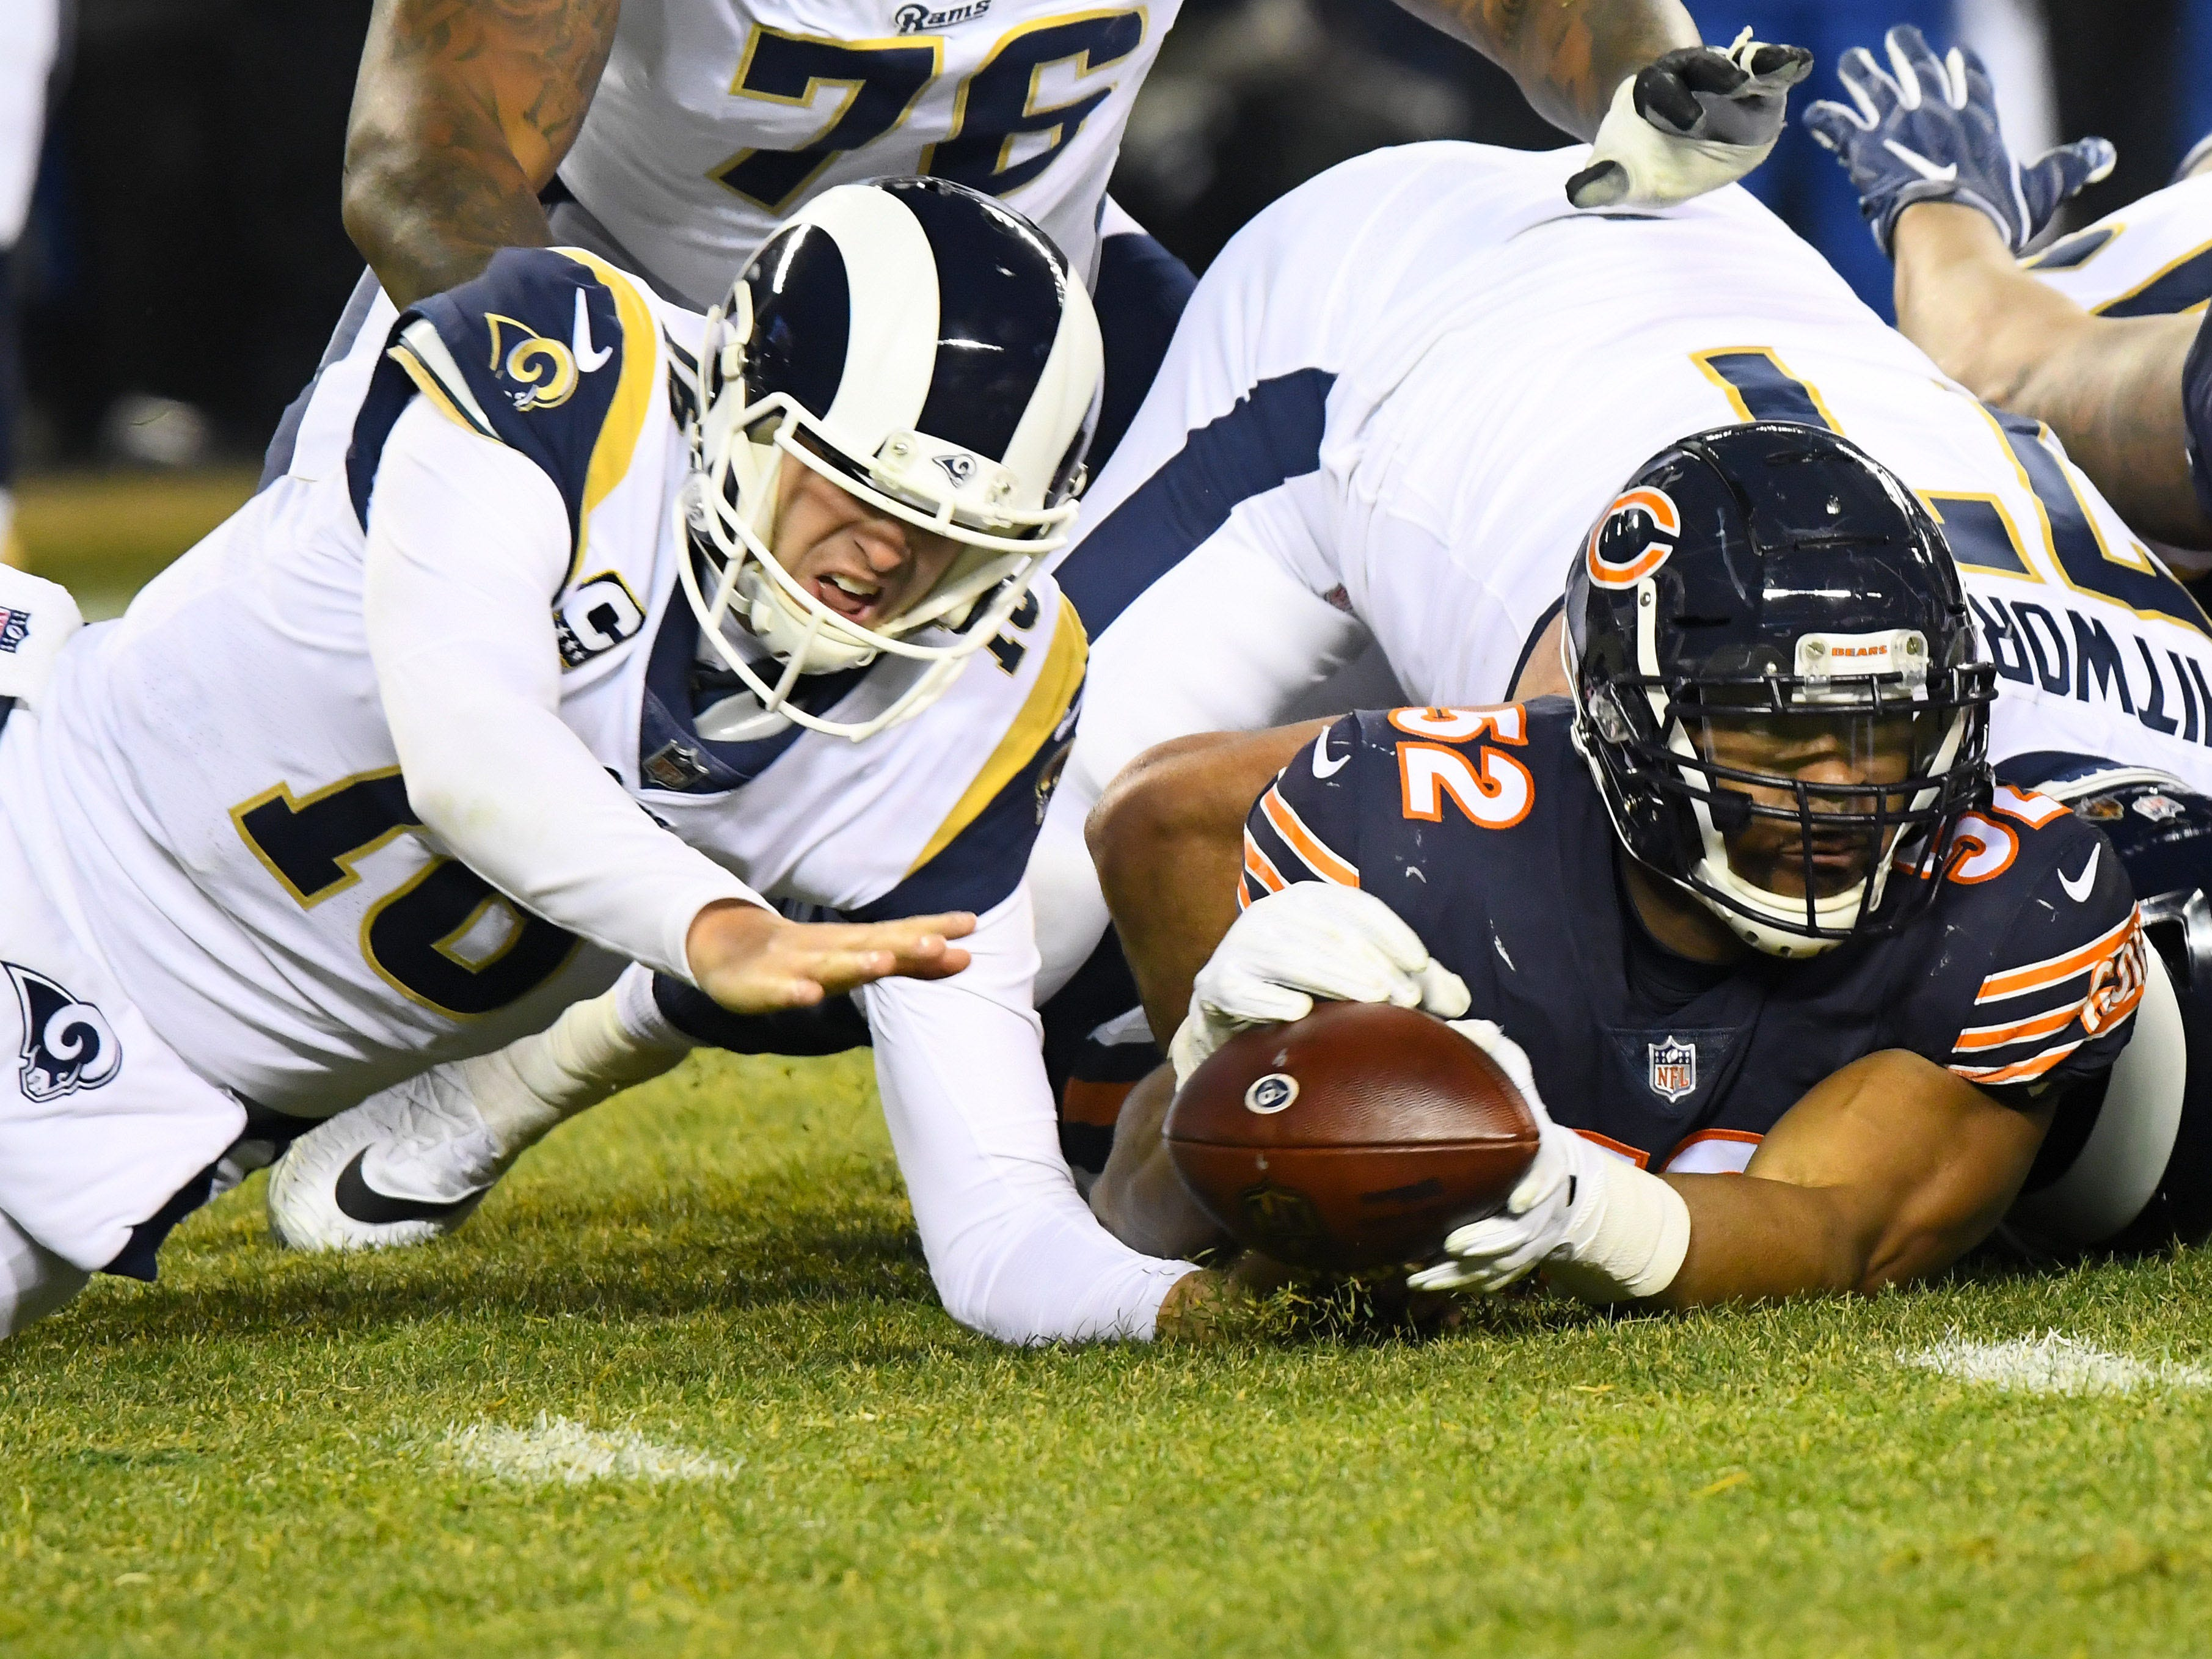 Los Angeles Rams quarterback Jared Goff and Chicago Bears linebacker Khalil Mack dive for a fumble during the second half at Soldier Field.